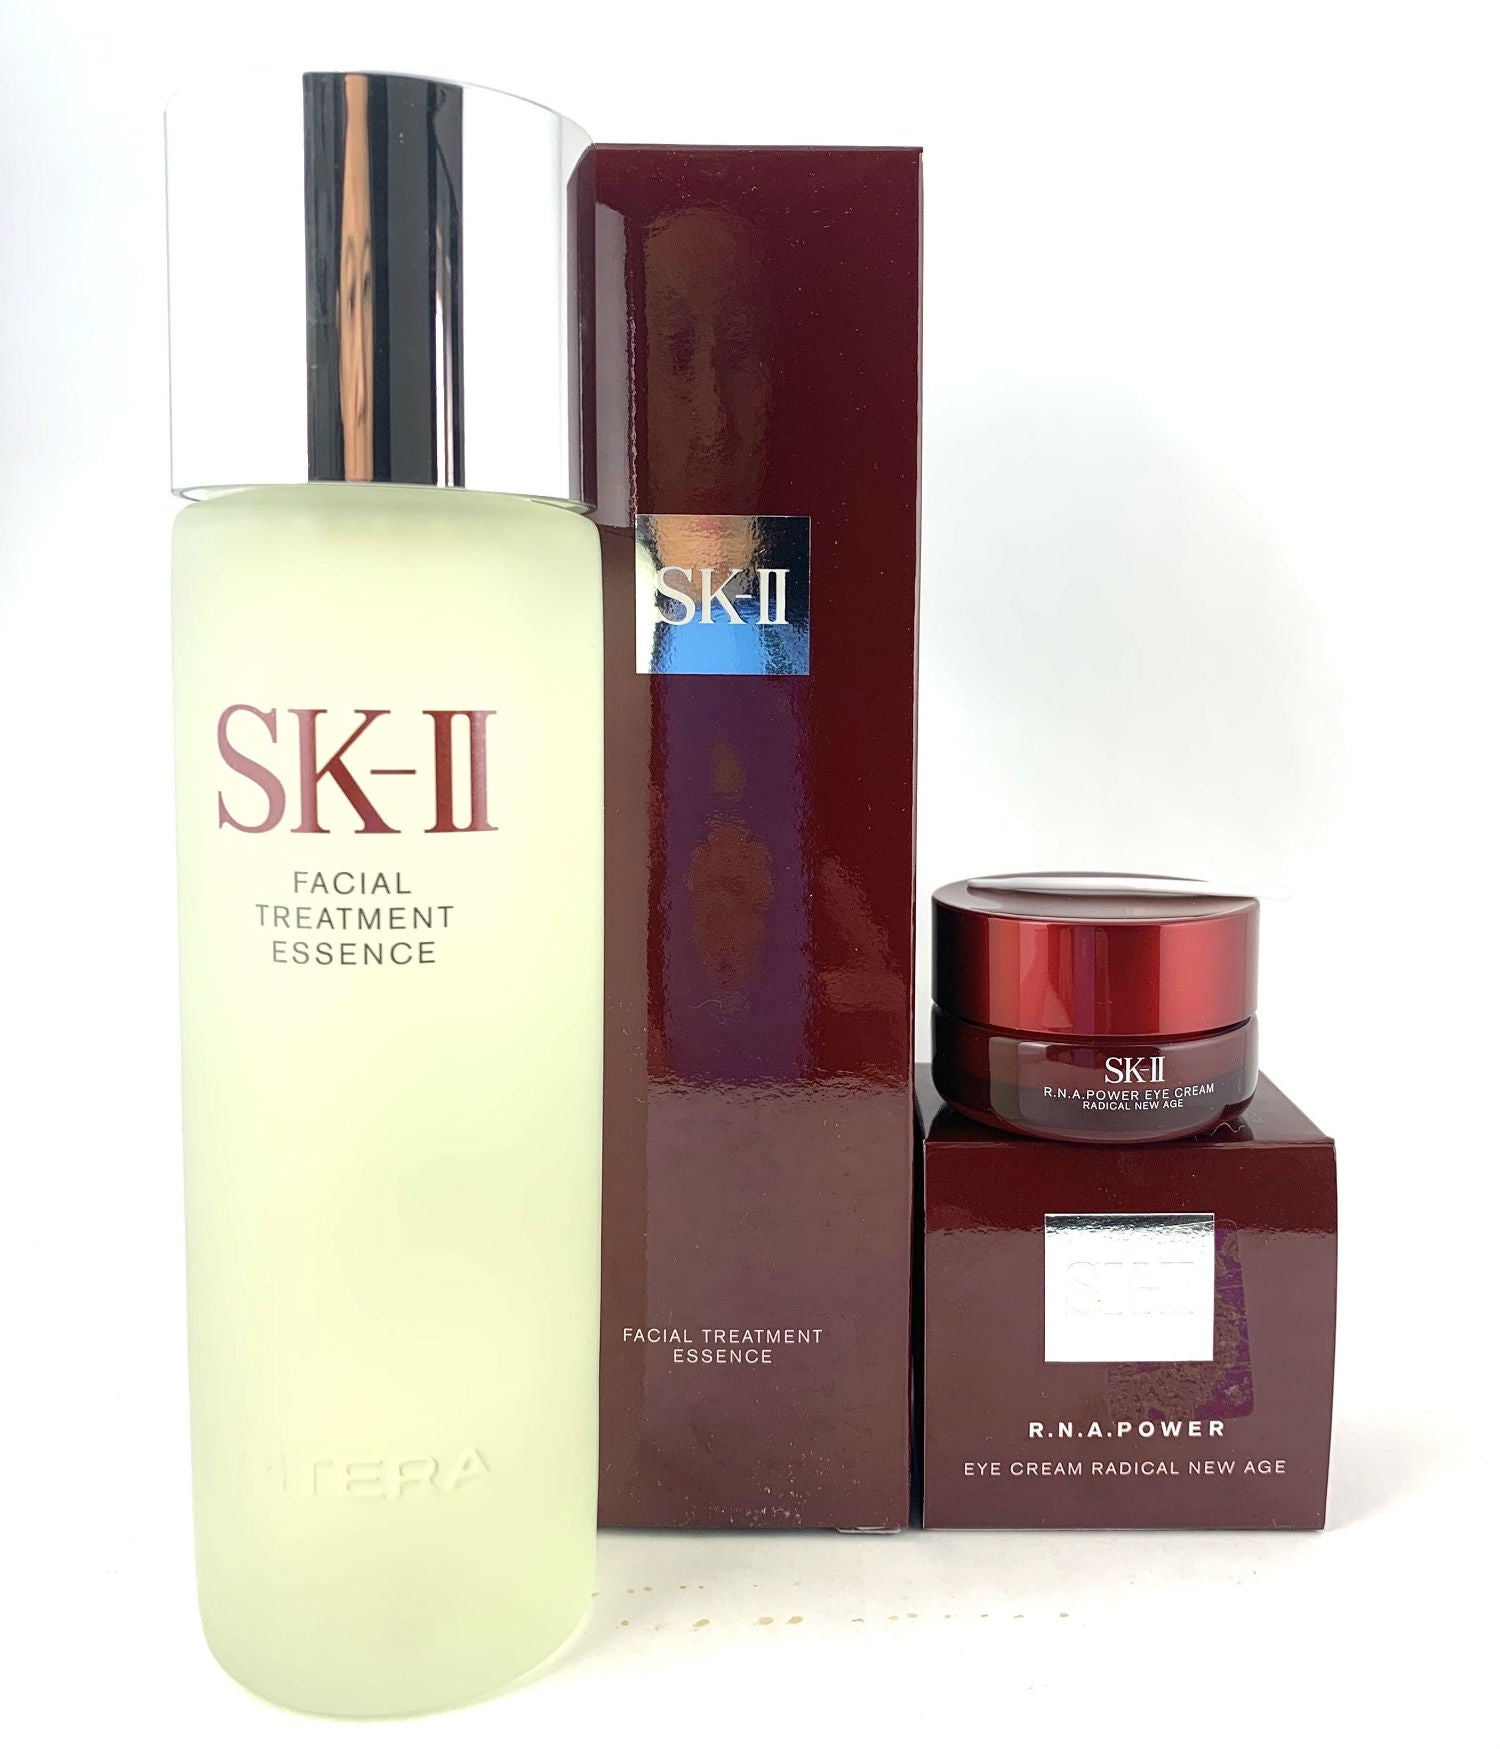 SK-II Special Set, SK-II Facial Treatment Essence 230ml, SK-II R.N.A Eye Cream, SK2, SKII. Shipped from USA.